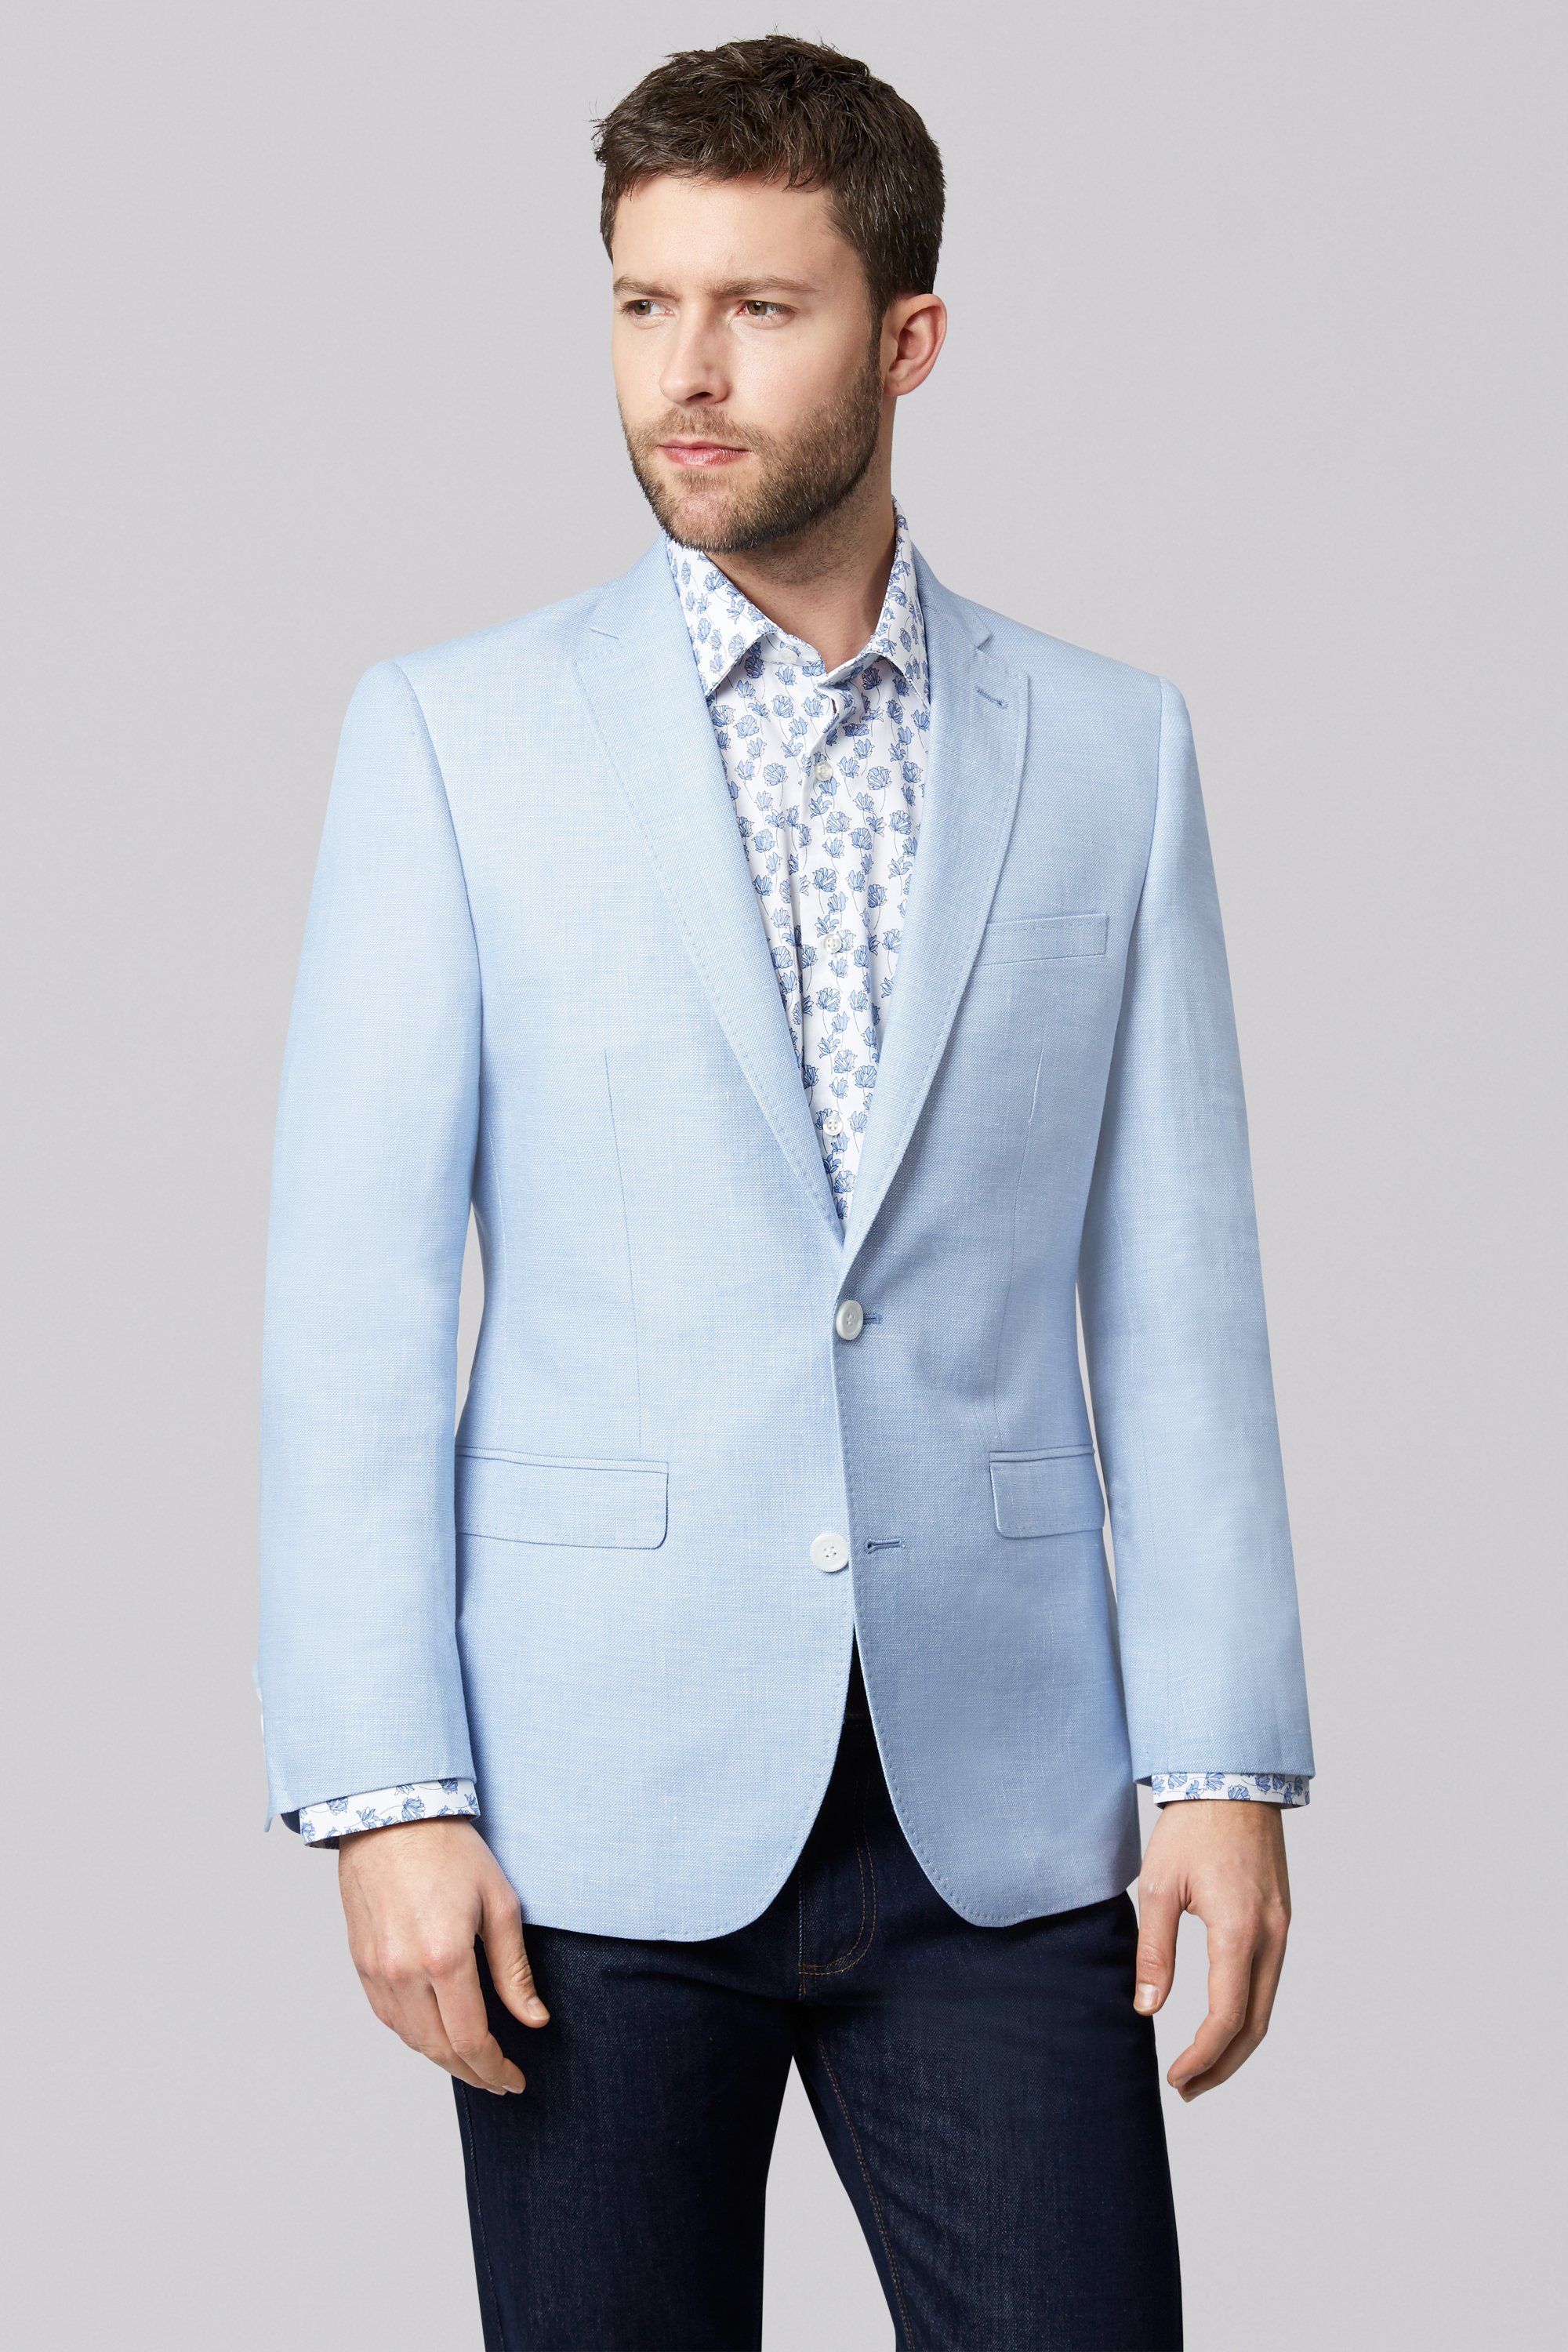 Explore suit jackets, pants, vests, and accessories from Paul Fredrick/7 Customer Support · Fast Delivery · Classic Style & Fit · Leader in Men's Fashion/10 (37K reviews).